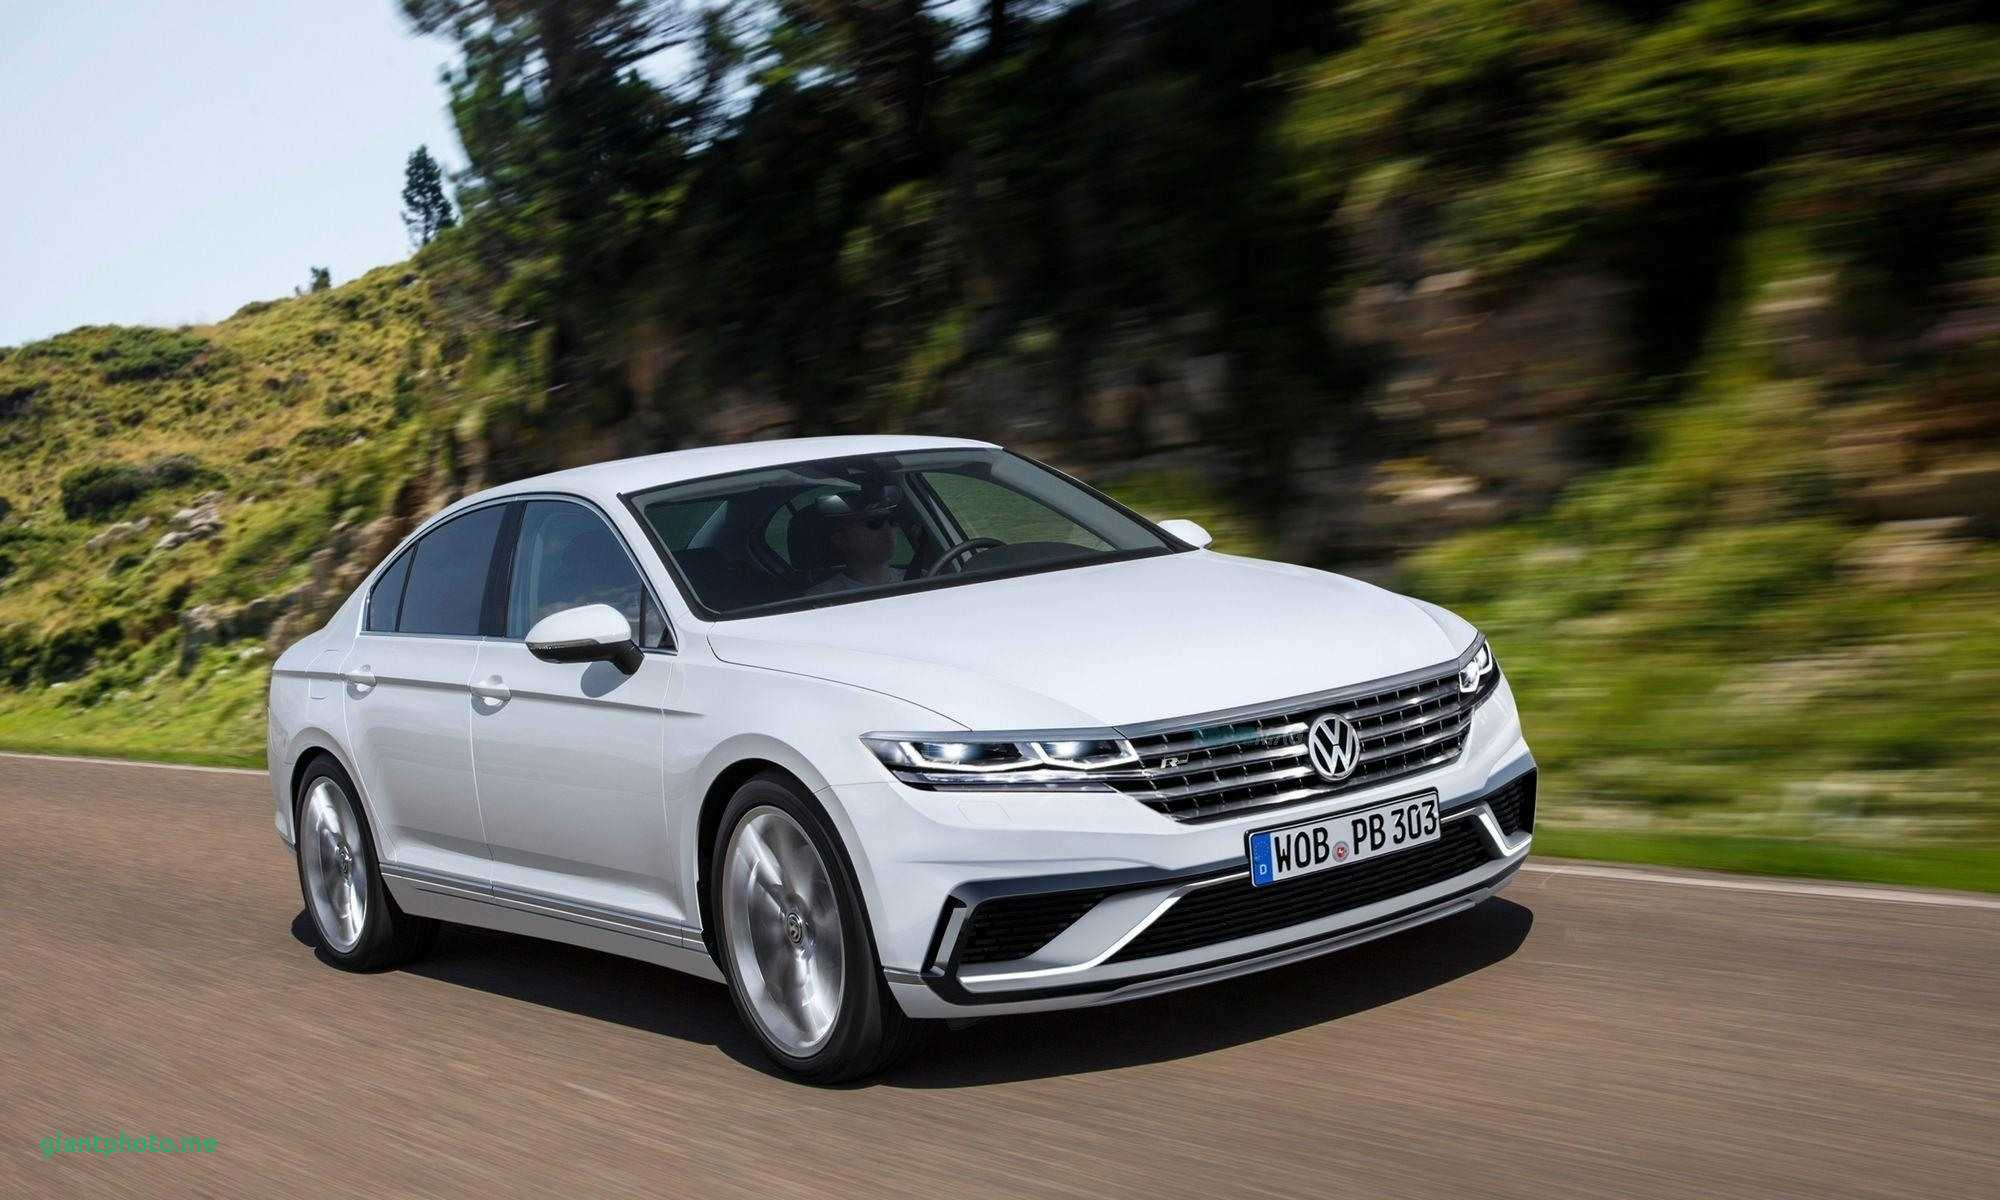 91 The Next Generation Vw Cc Model